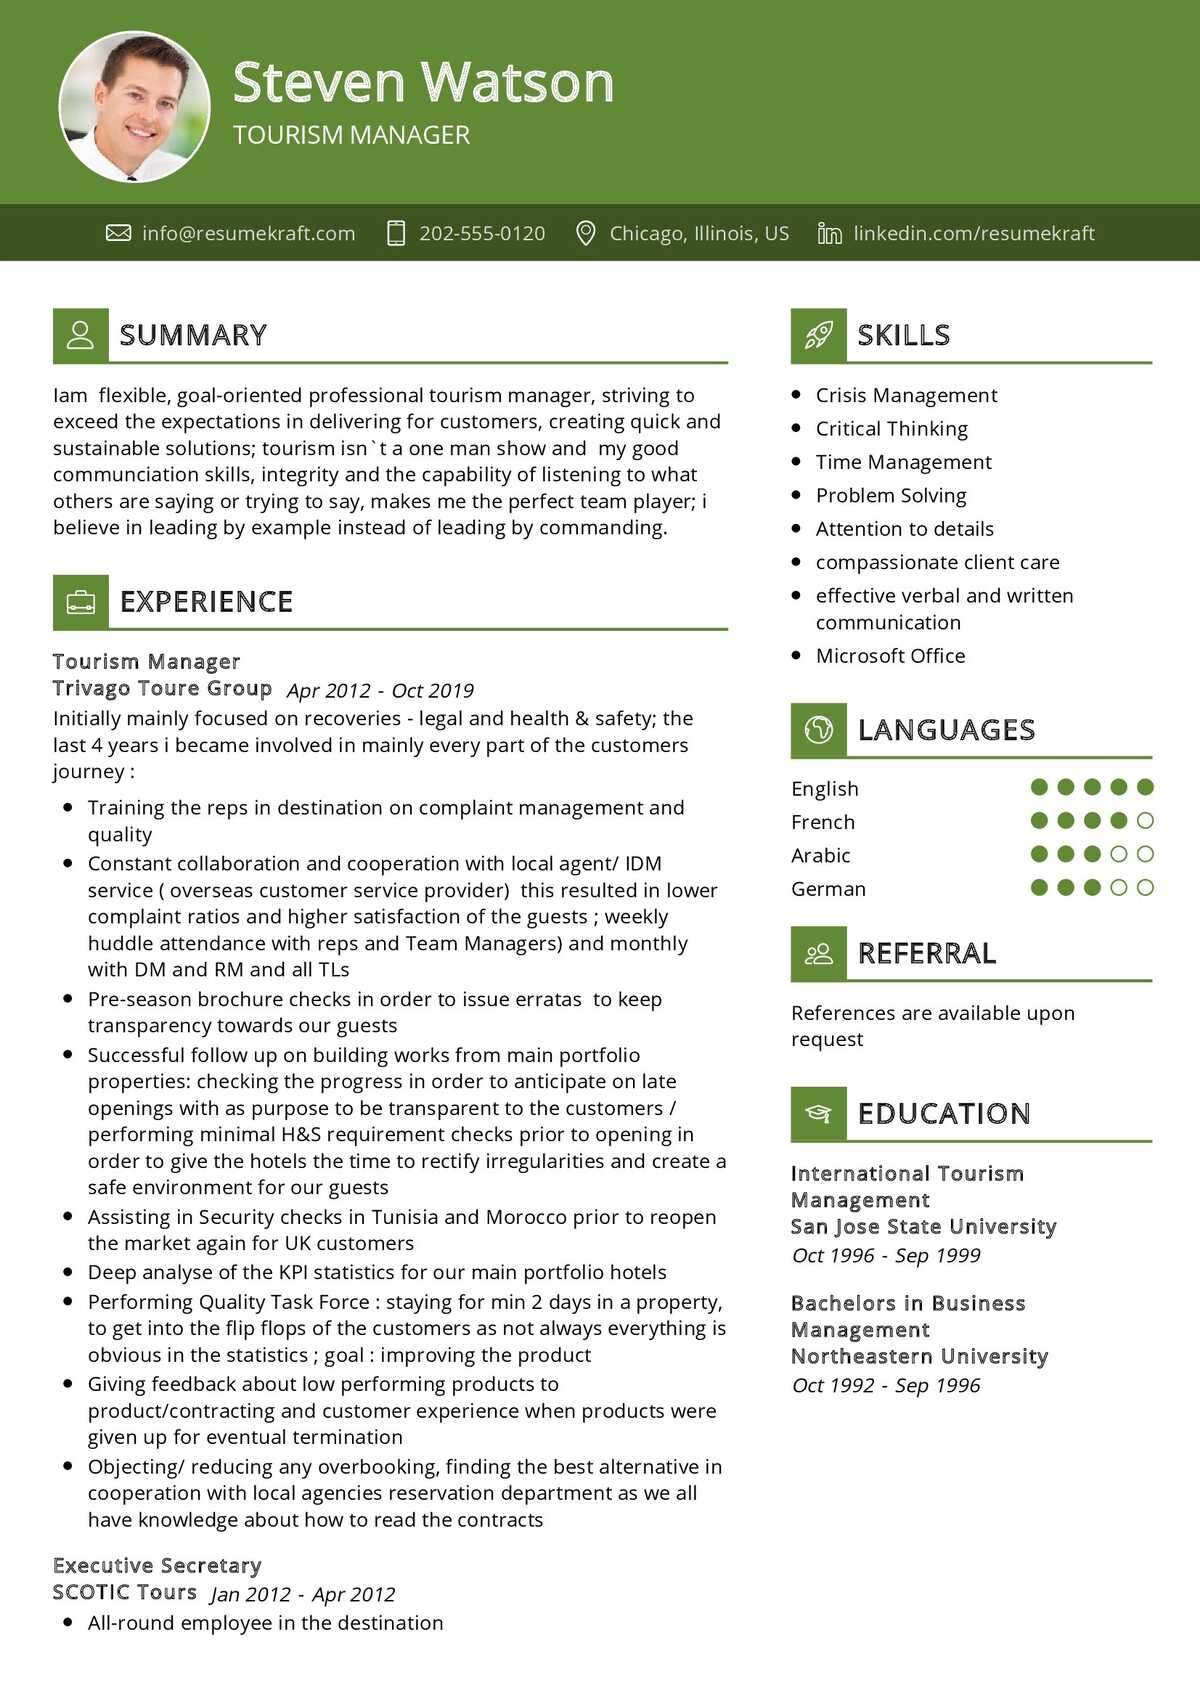 Tourism Manager Resume Sample